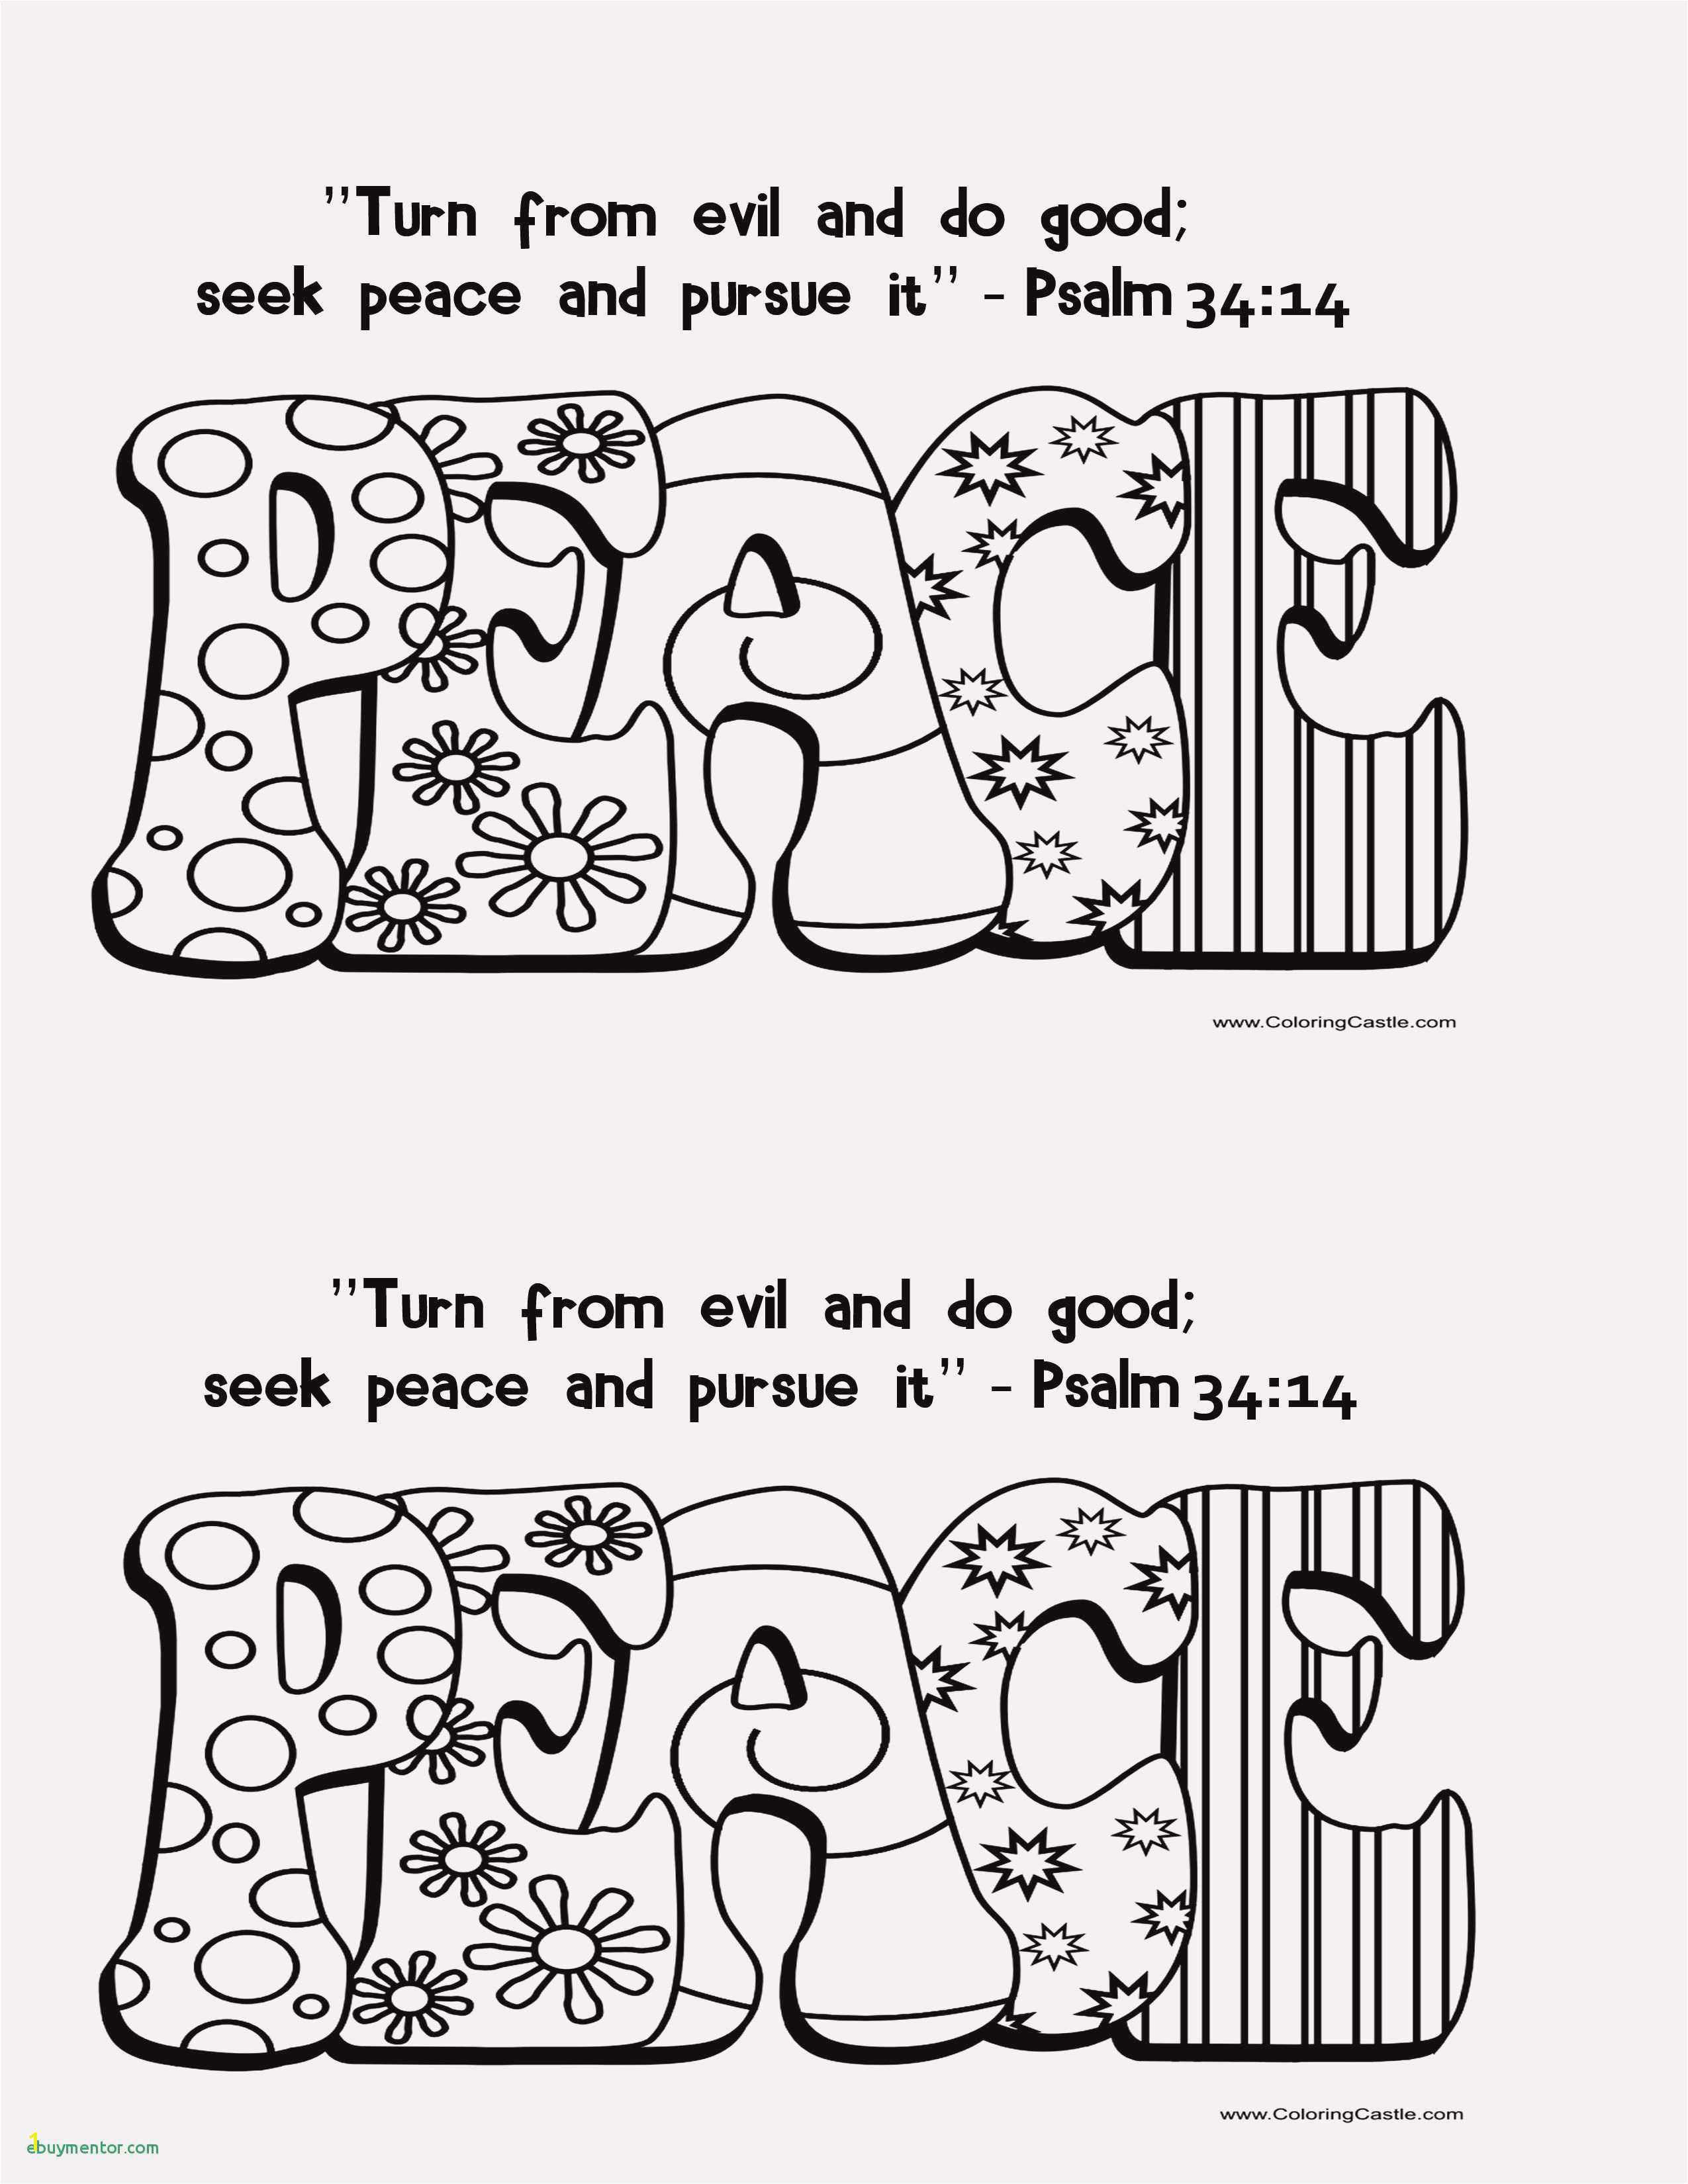 Holy Spirit Coloring Pages Print Free Fruit the Spirit Coloring Pages Lovely Awesome Od Dog Lovely